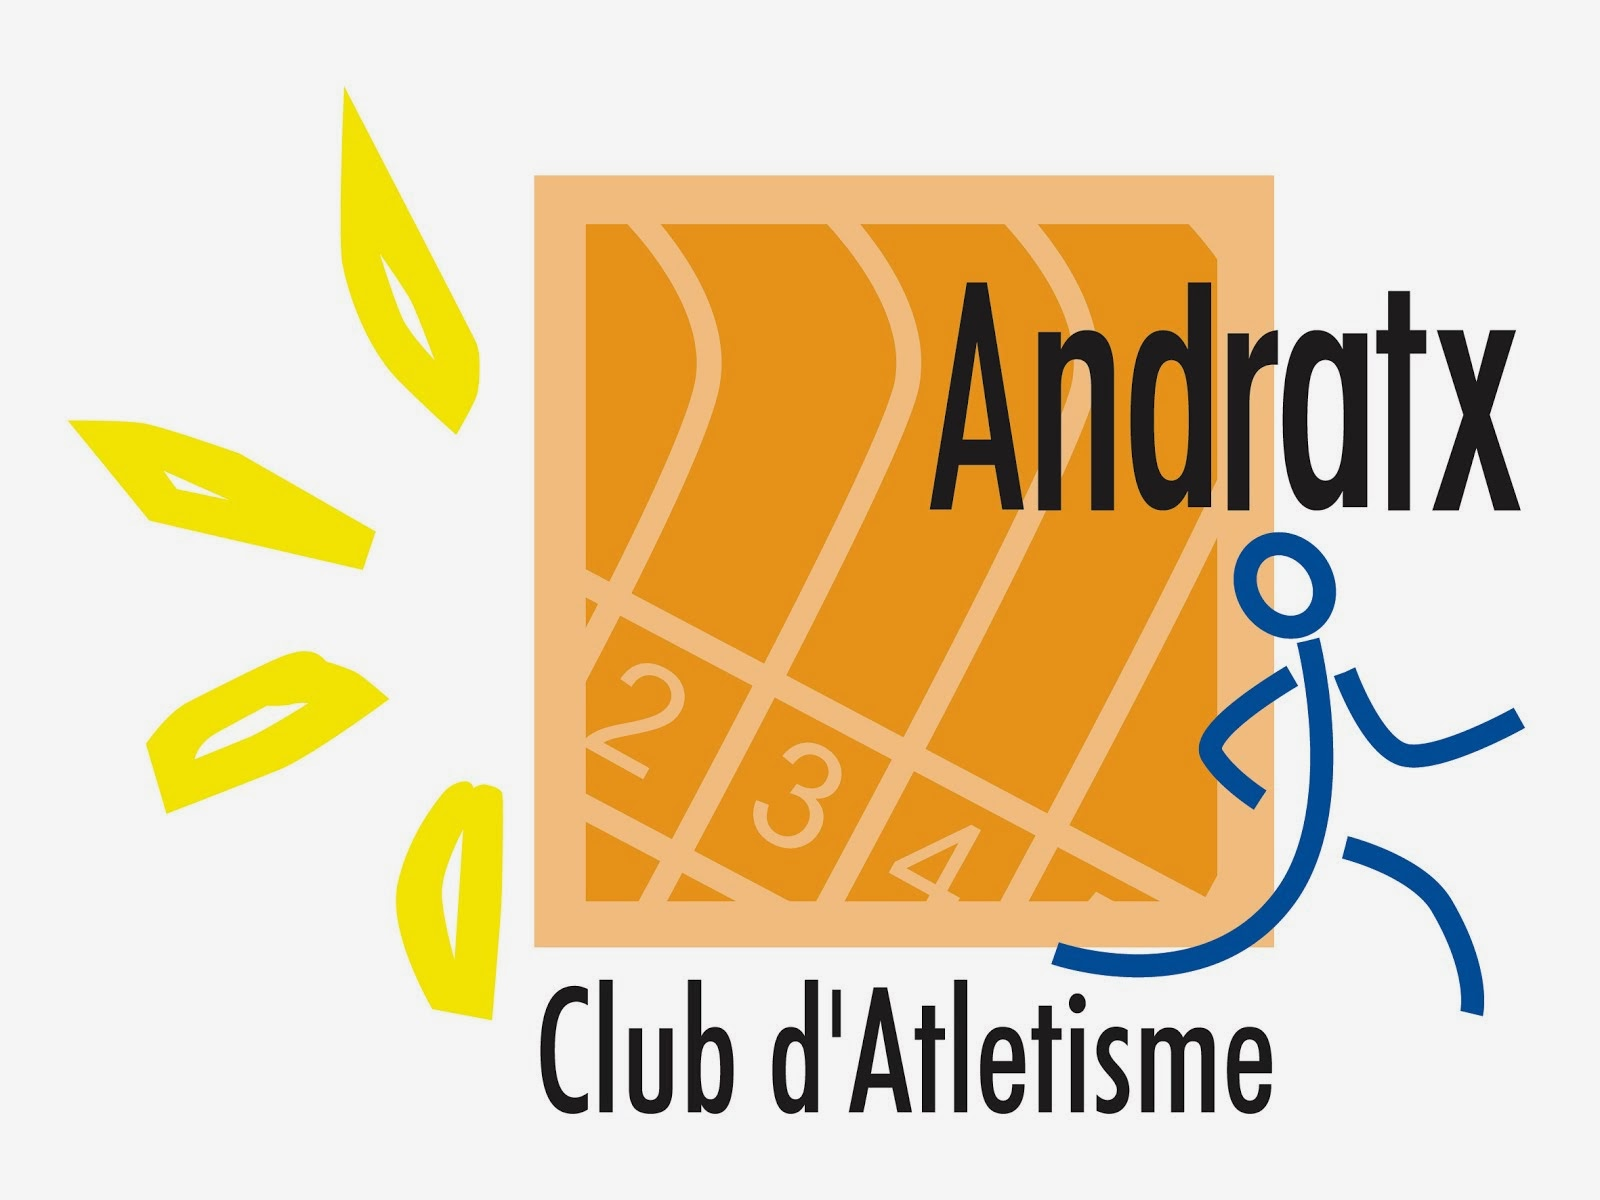 Club Atletisme Andratx